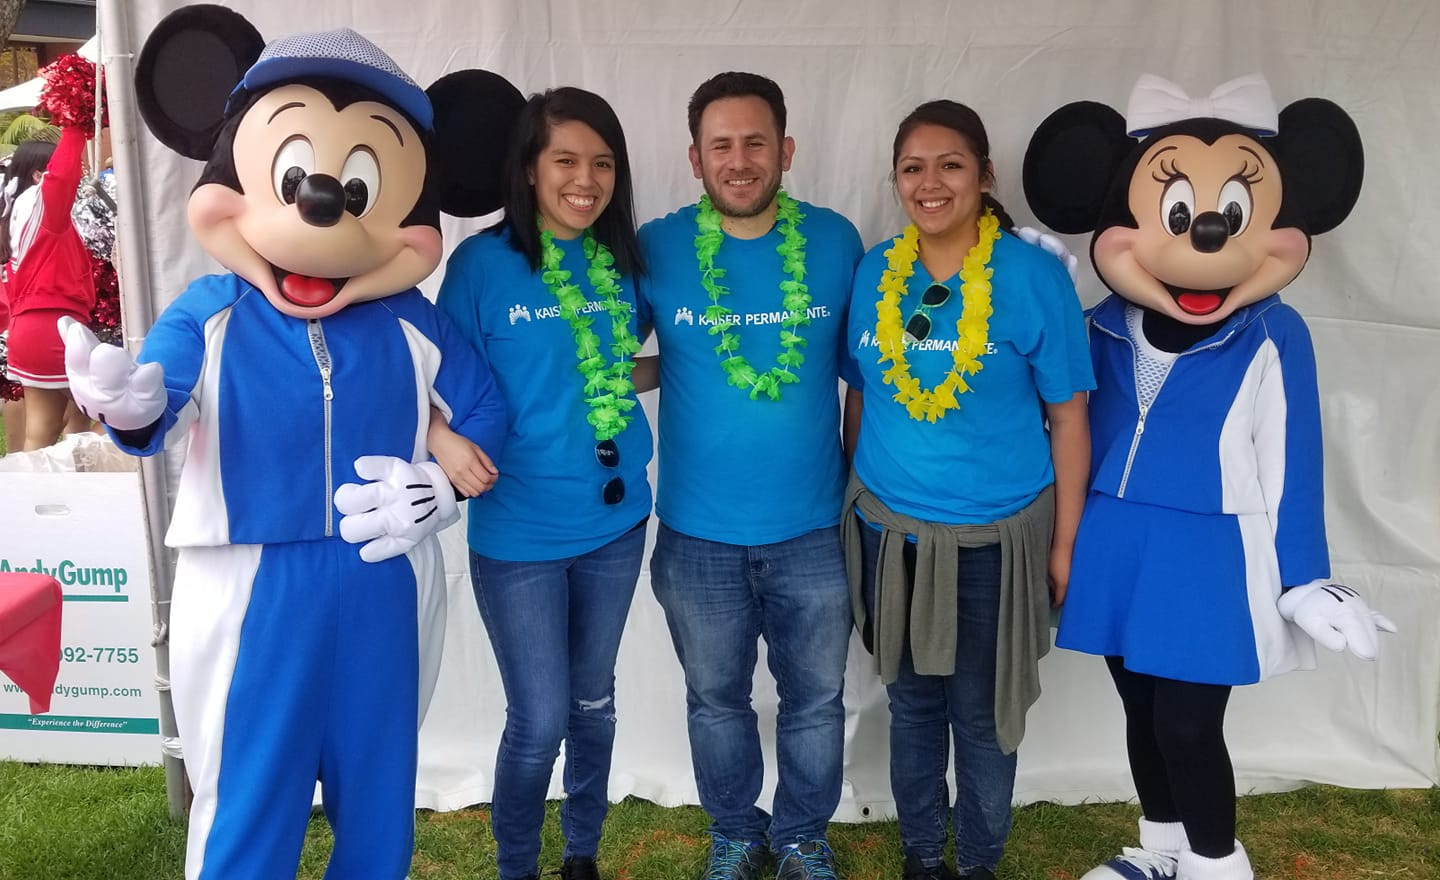 Volunteering for the 2019 Special Olympics with Kaiser Permanente 6-8-2019